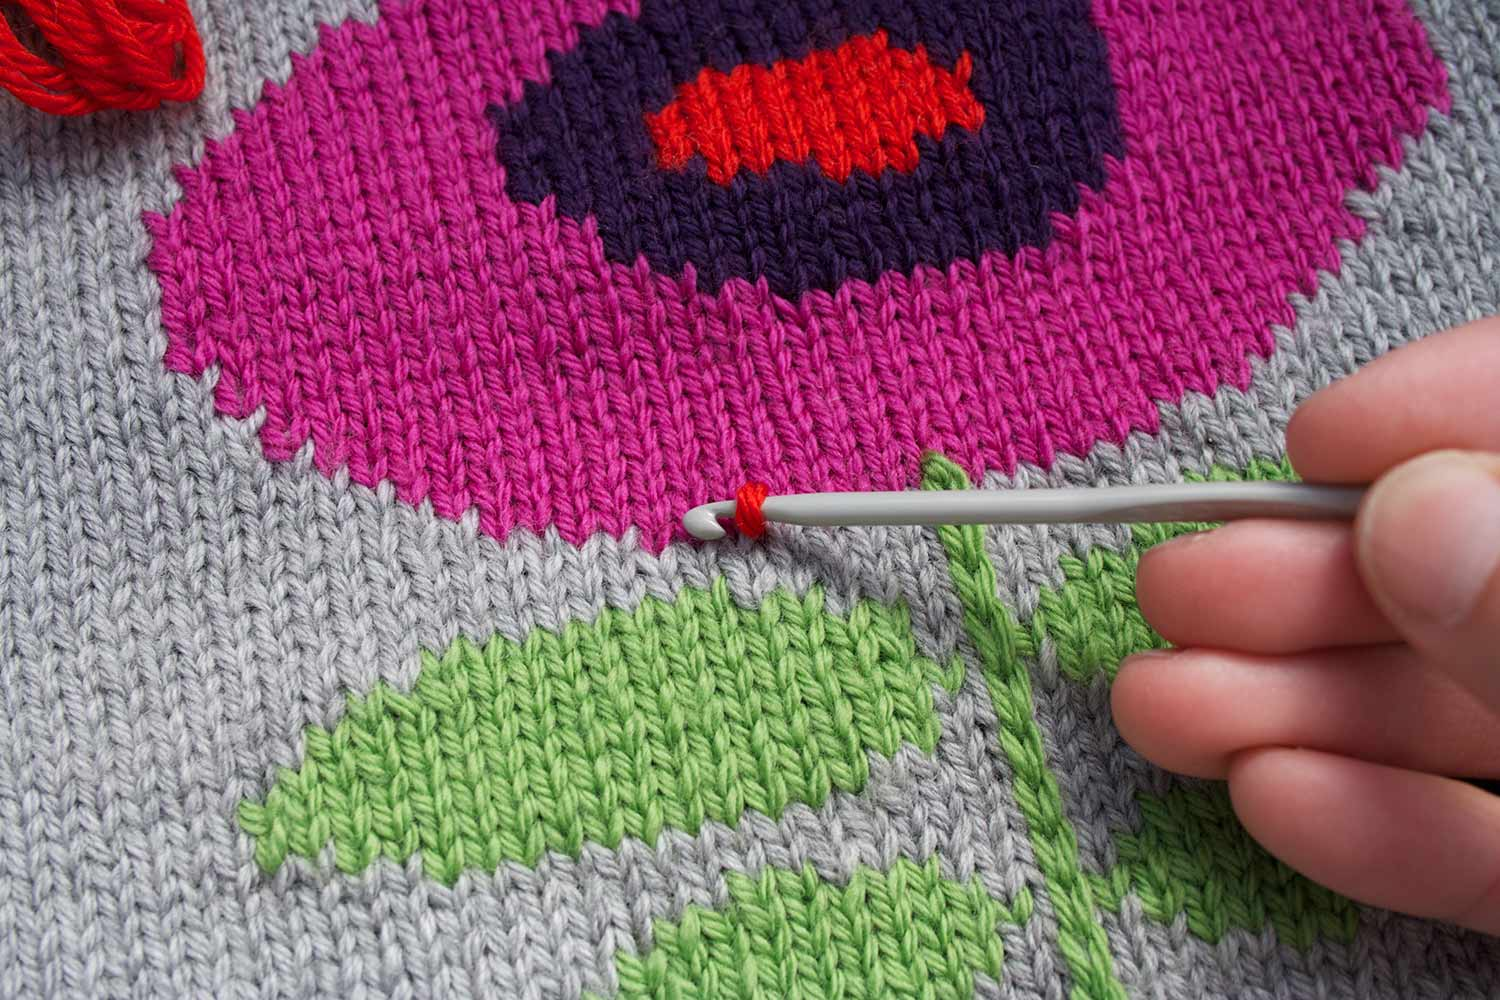 Crochet hook with a loop of yarn round it forming a stitch that has been drawn through knitted fabric at the edge of an intarsia flower motif.